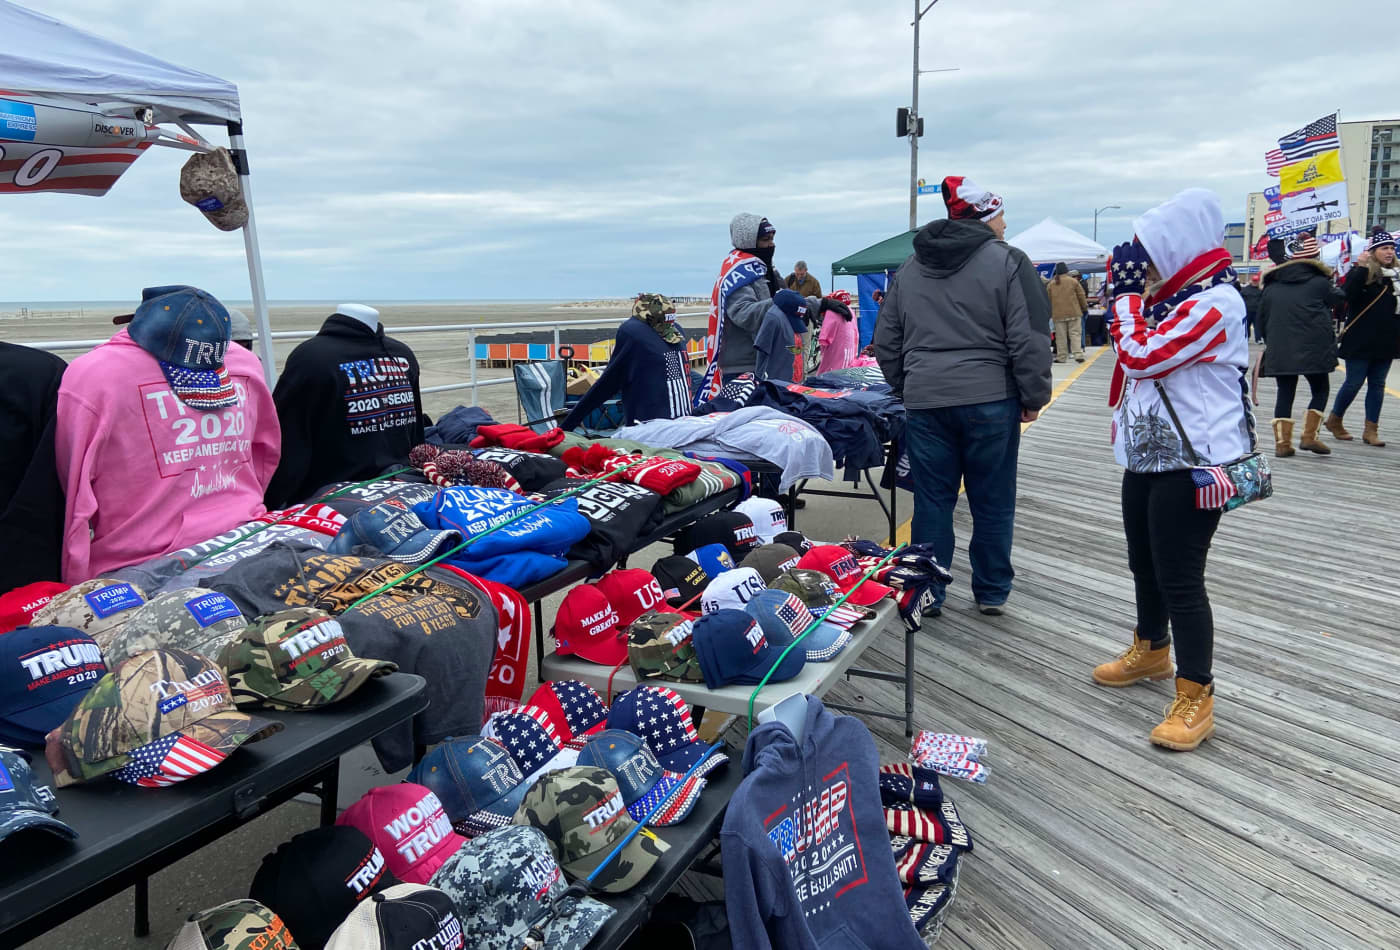 Trump's Wildwood rally was an economic 'shot in the arm' — but he still has to pay for it, mayor says